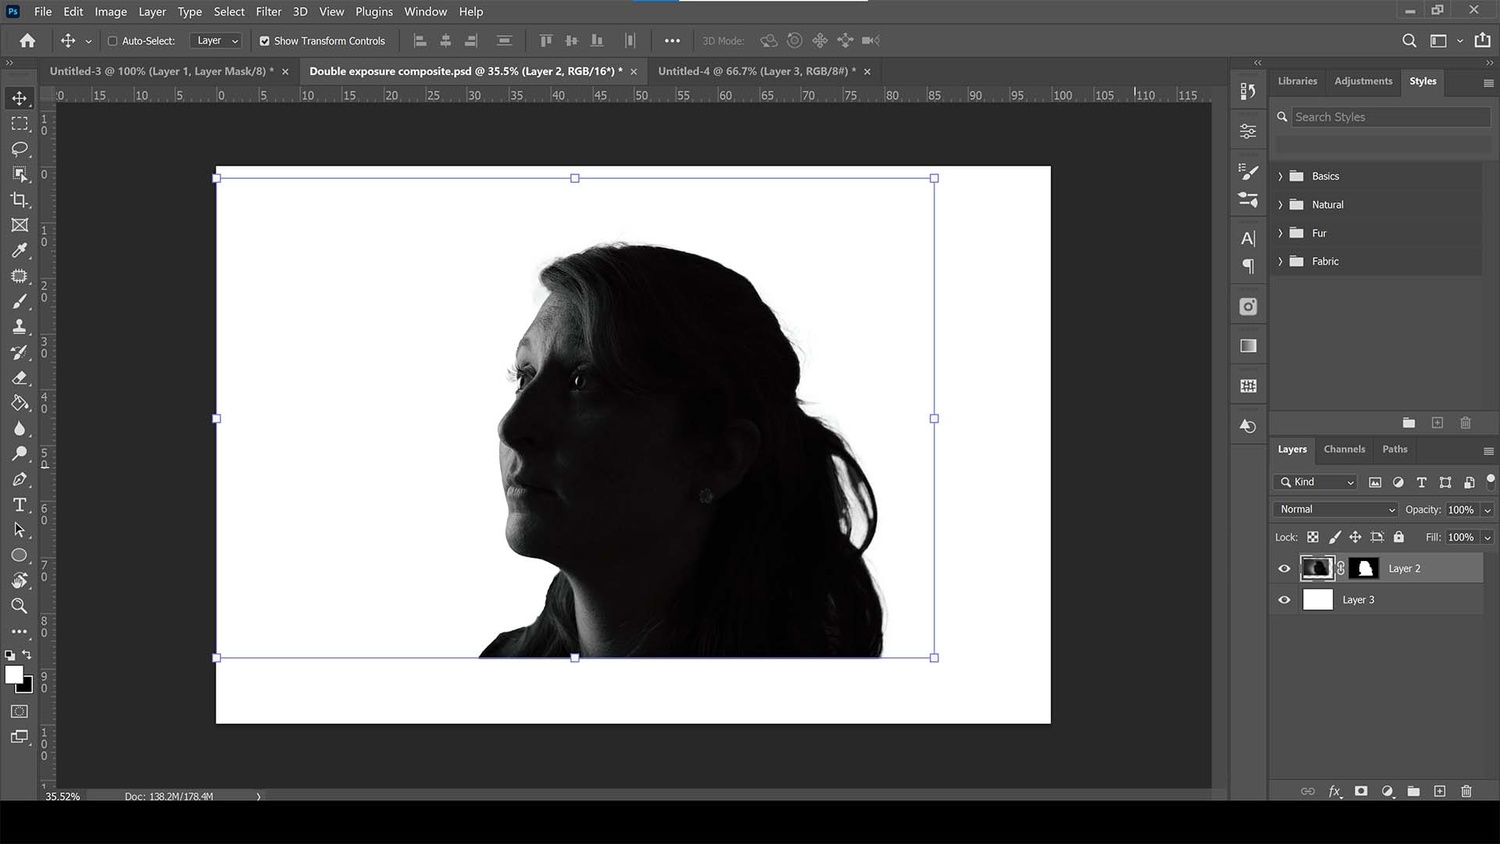 Convert to black and white in photoshop